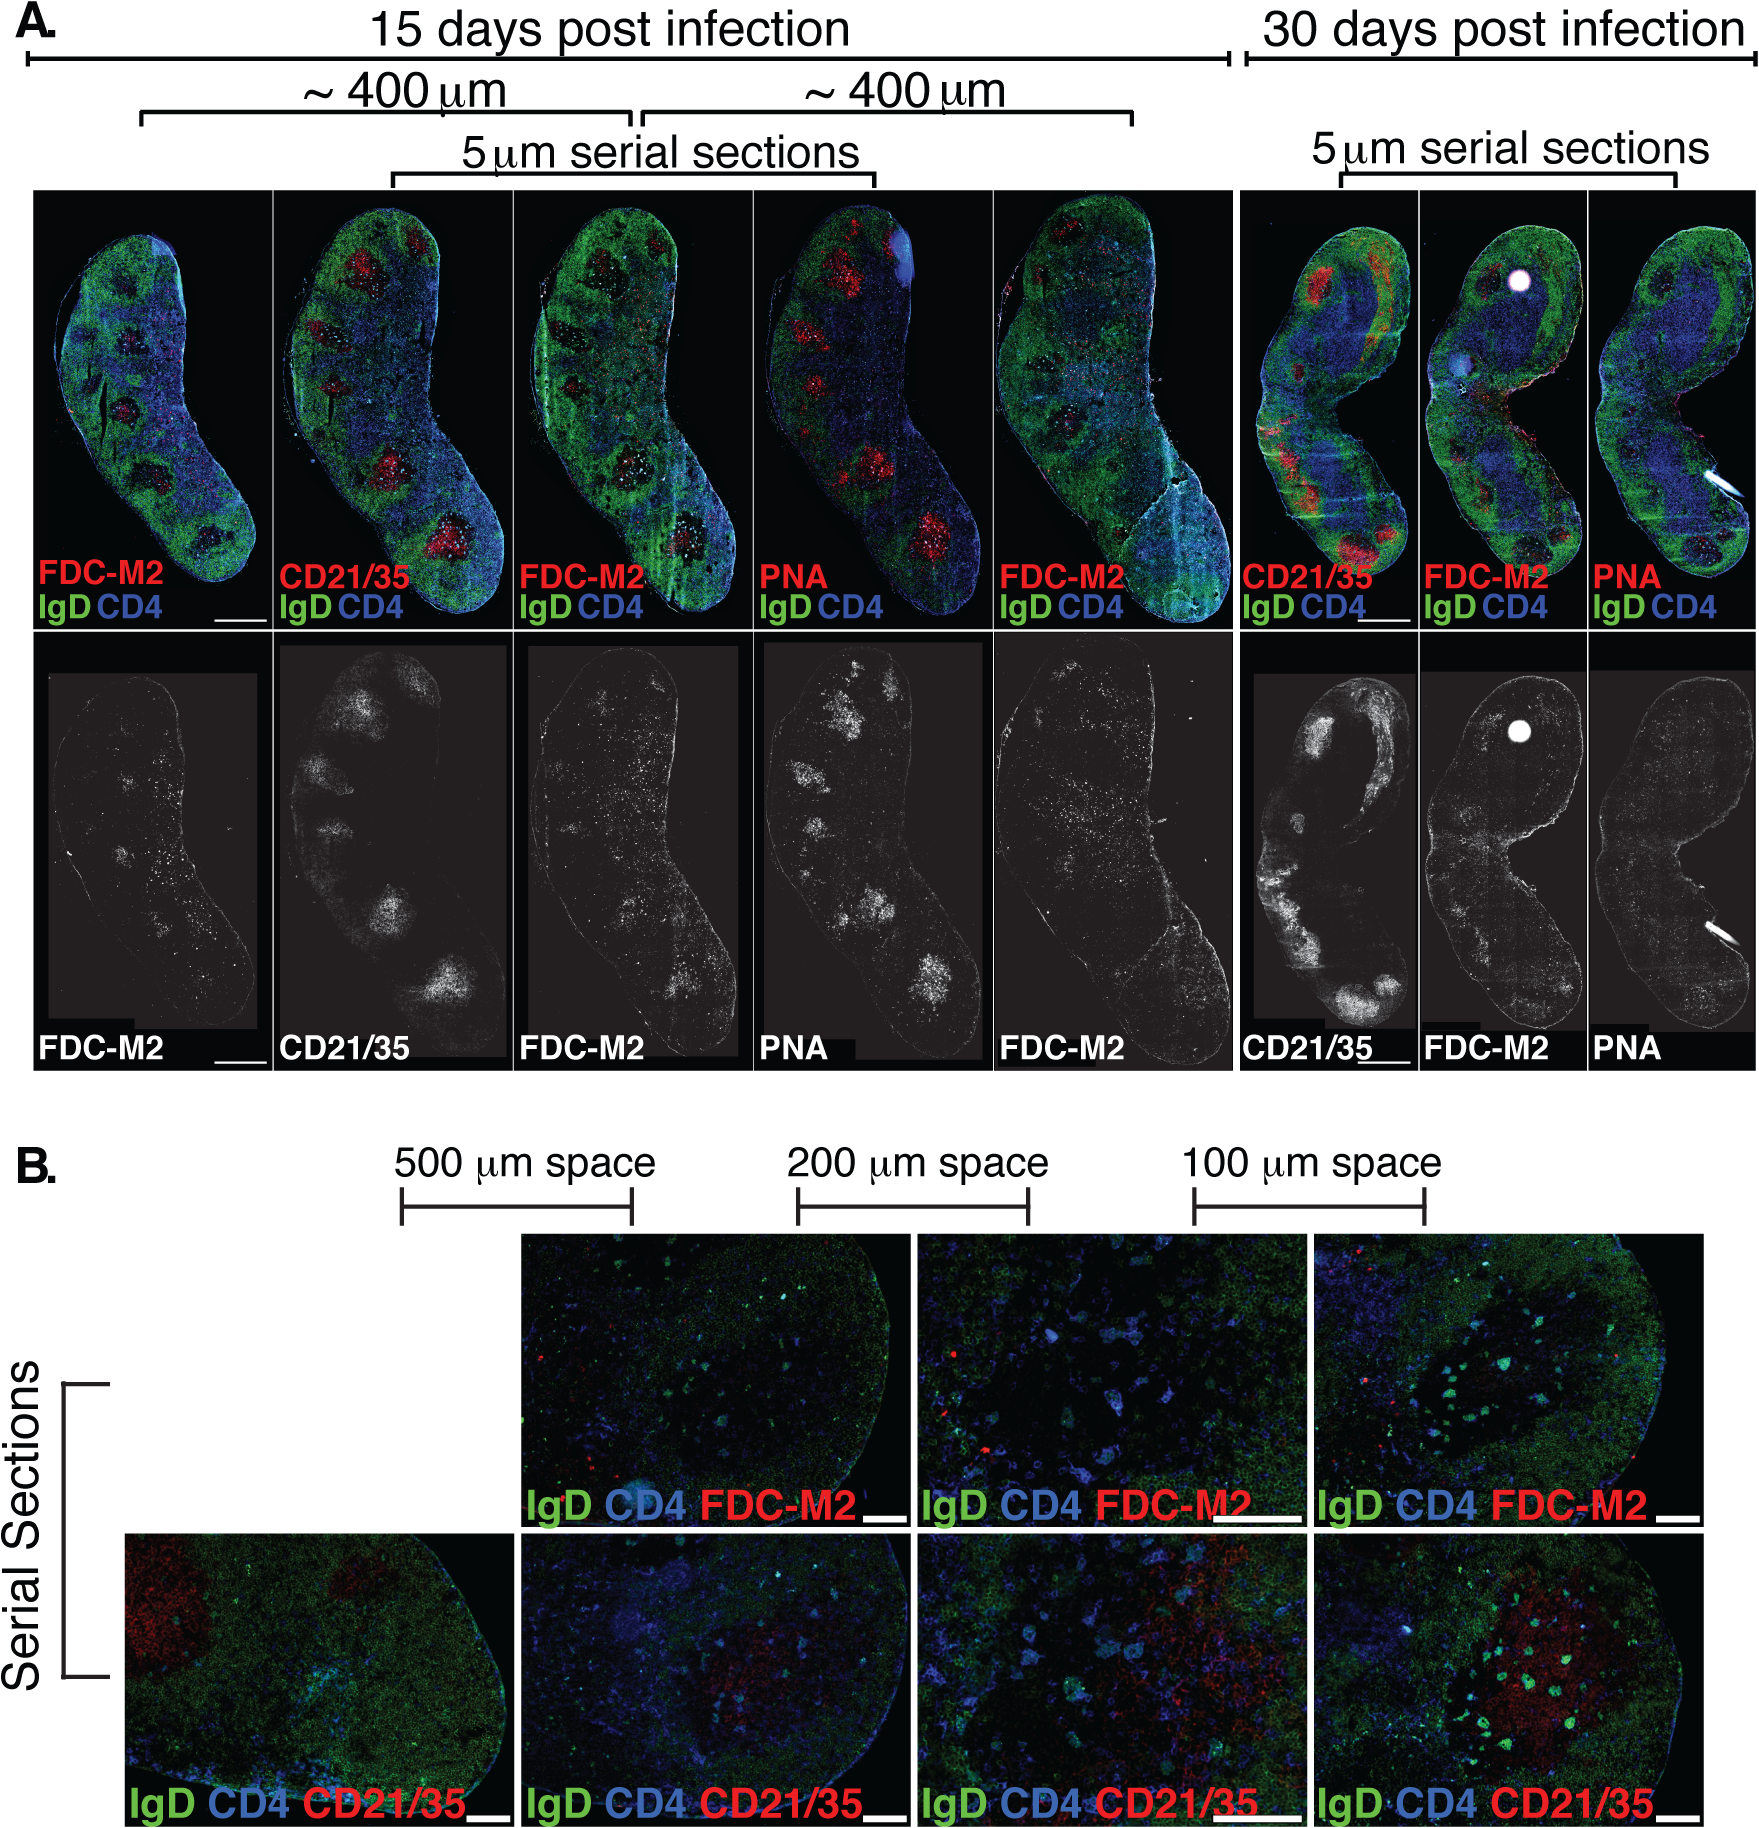 (A) Left Inguinal (Ing) LN from Bb-infected mice were analyzed by immunofluorescence for follicular dendritic cell markers FDC-M2, CD21/35, and for germinal centers (PNA; all red).